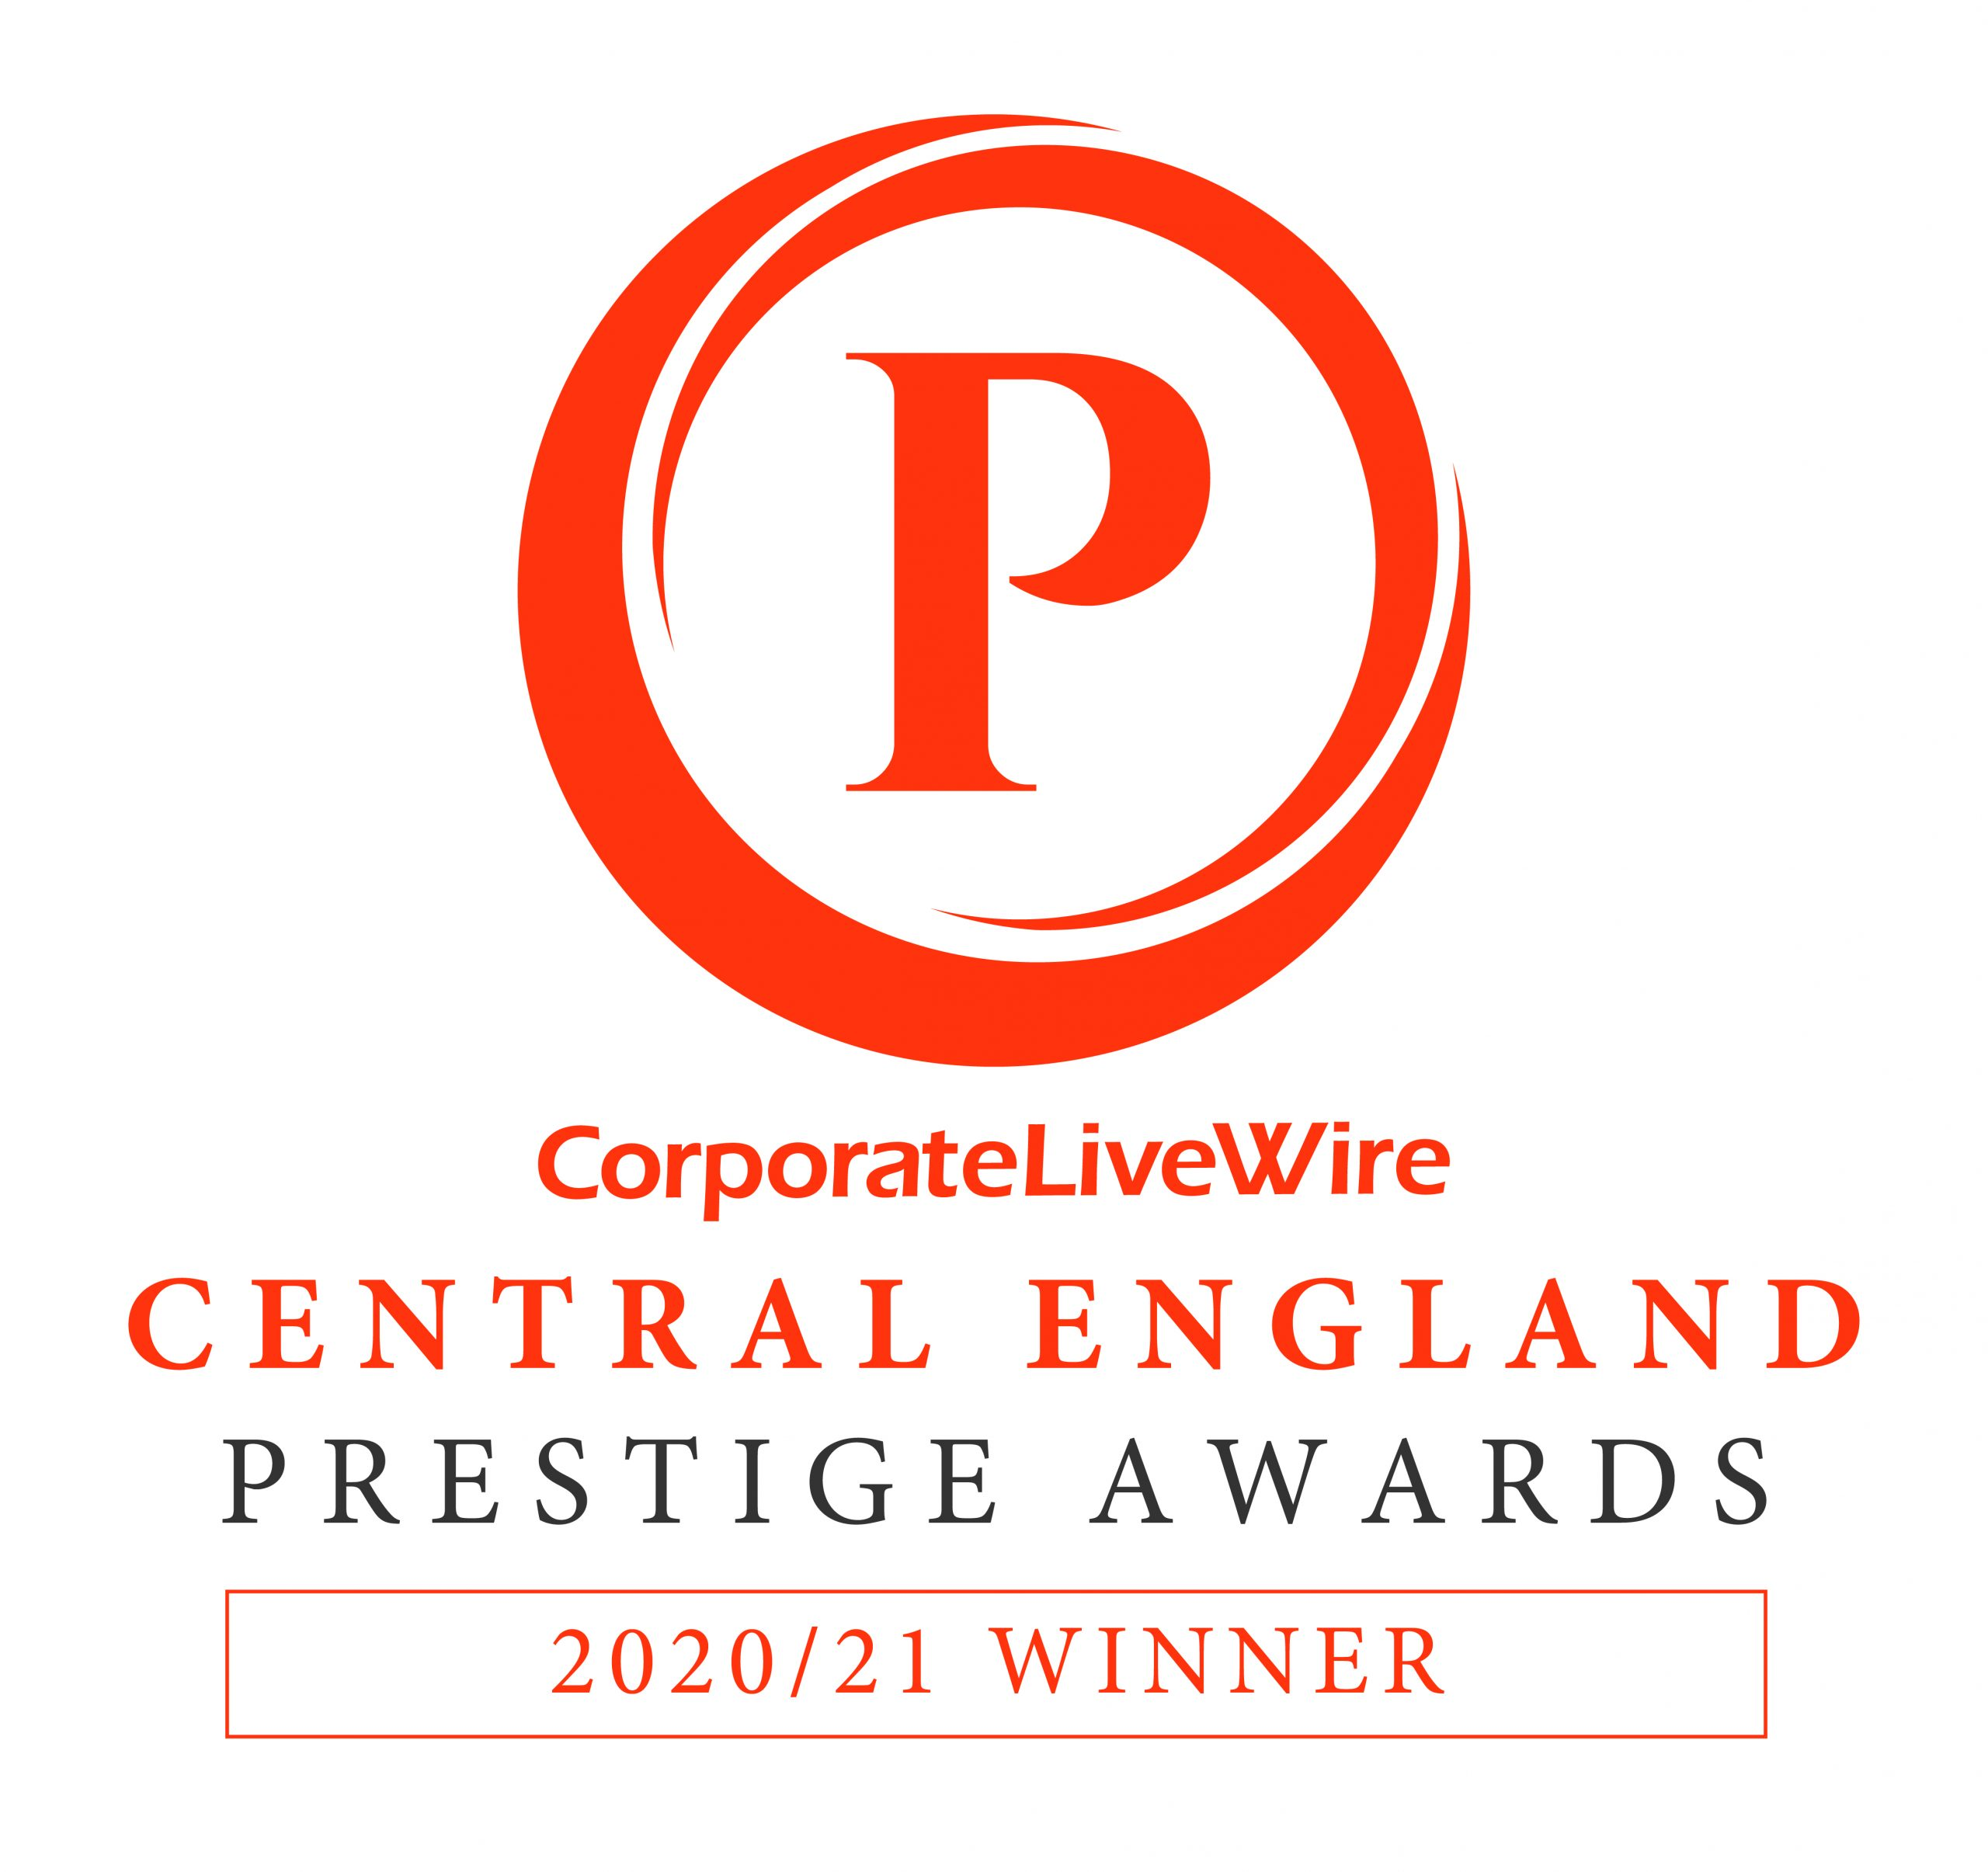 Property Specialists of the Year – Central England, Nottingham in the Central England Prestige Awards